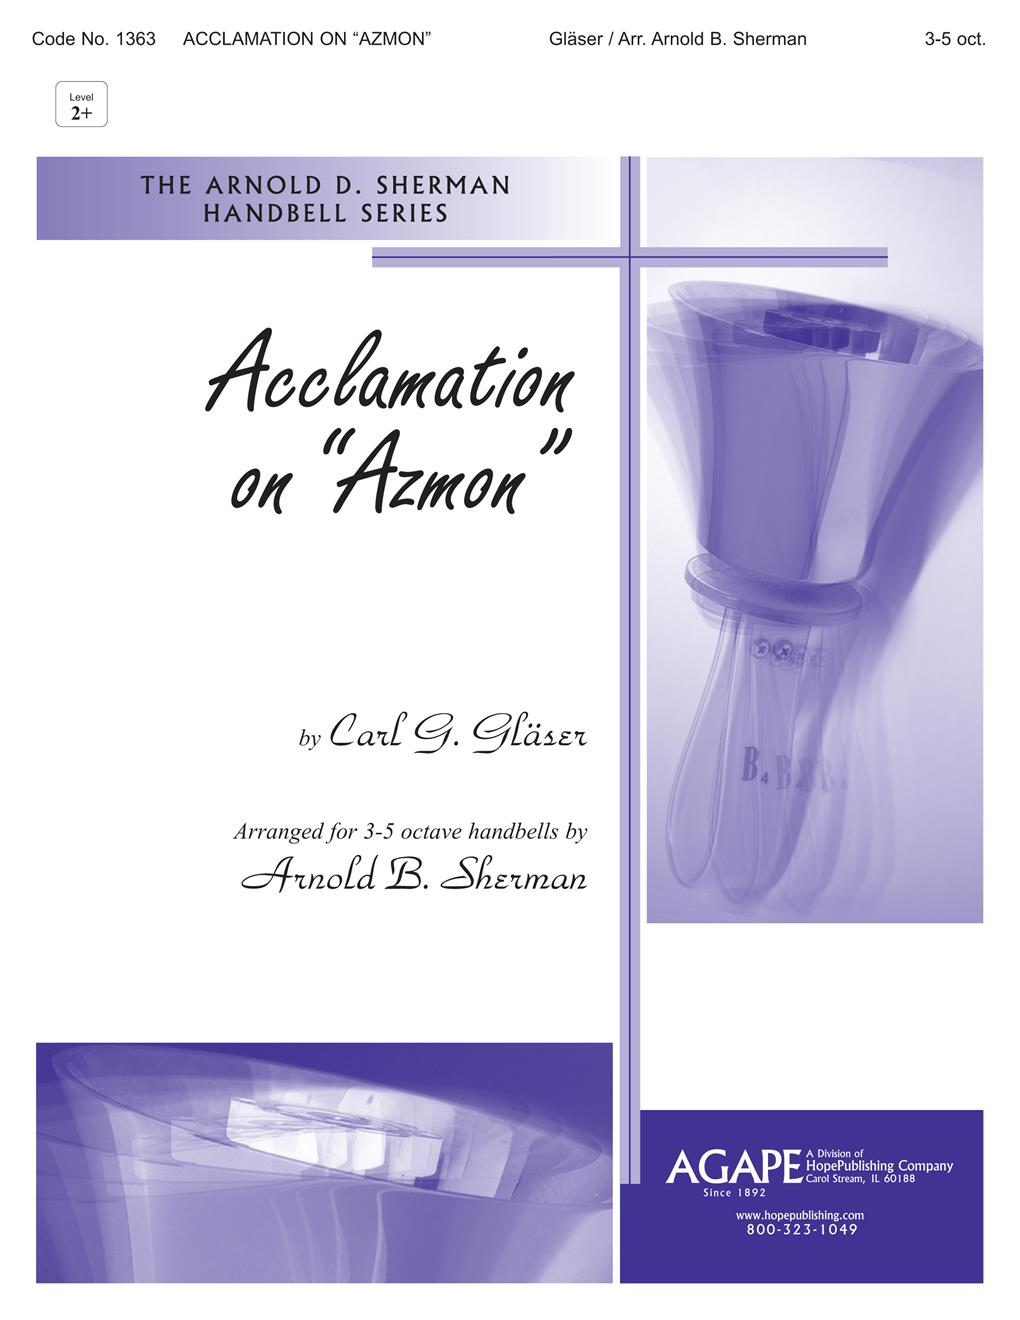 "Acclamation on ""Azmon"" - 3-5 oct. Cover Image"